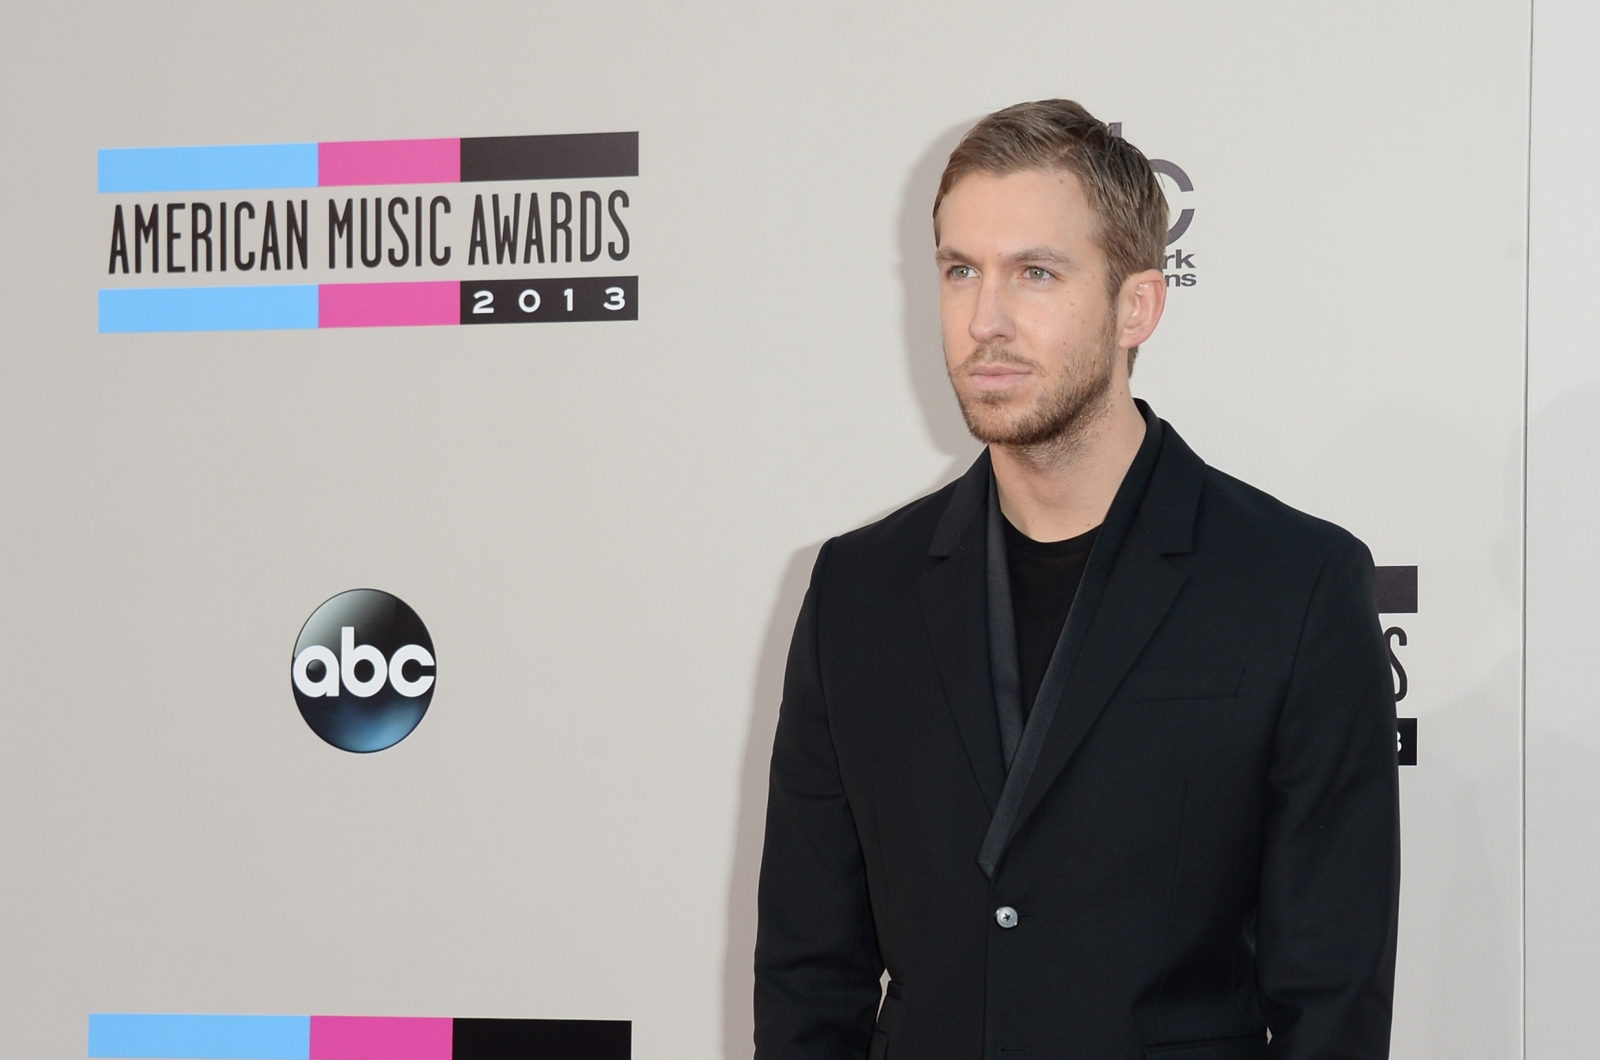 Calvin Harris music removed from Tidal?